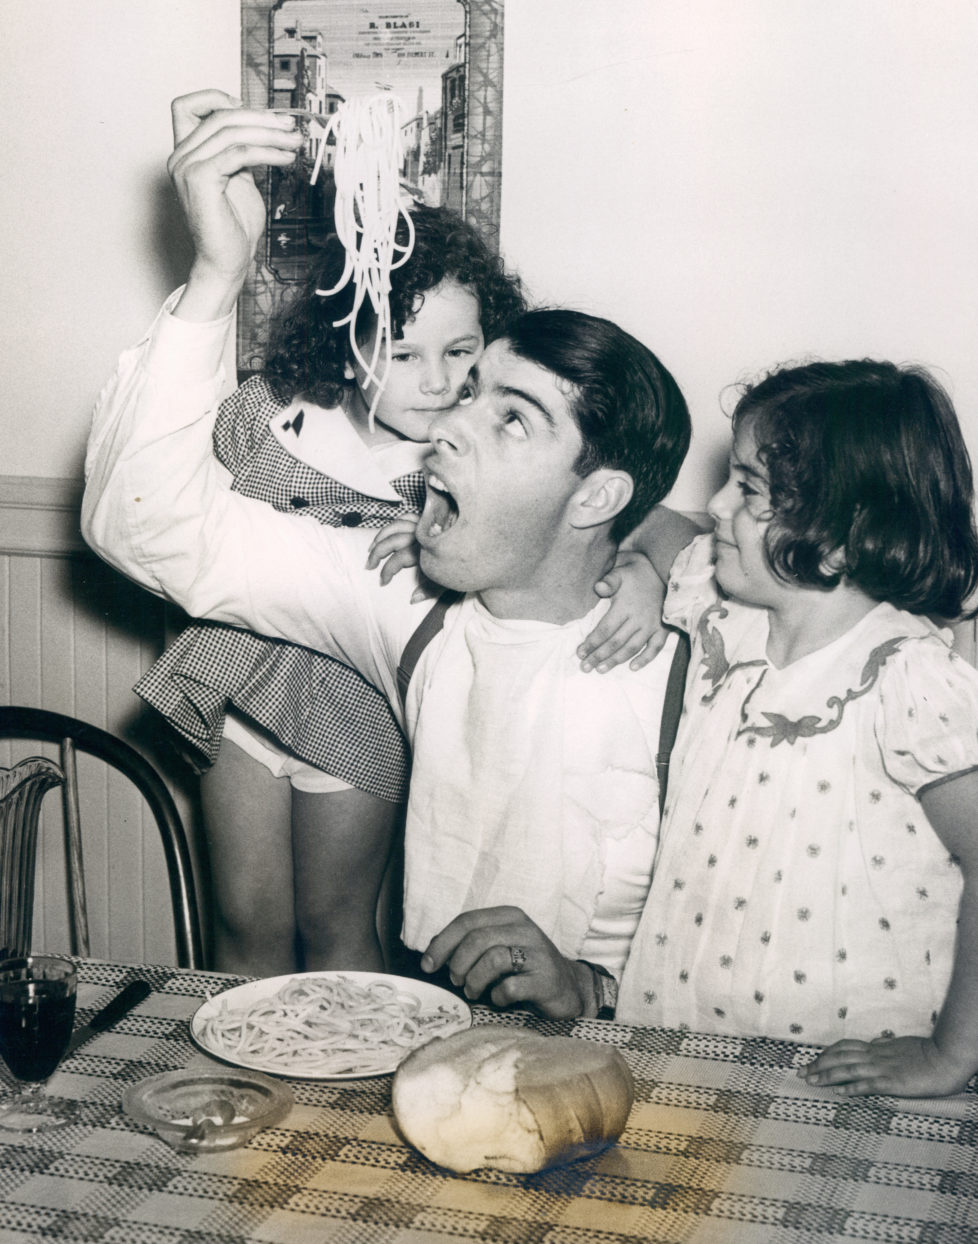 UNSPECIFIED - UNDATED: Joe DiMaggio eating pasta with a couple of young fans. (Photo by Sports Studio Photos/Getty Images)